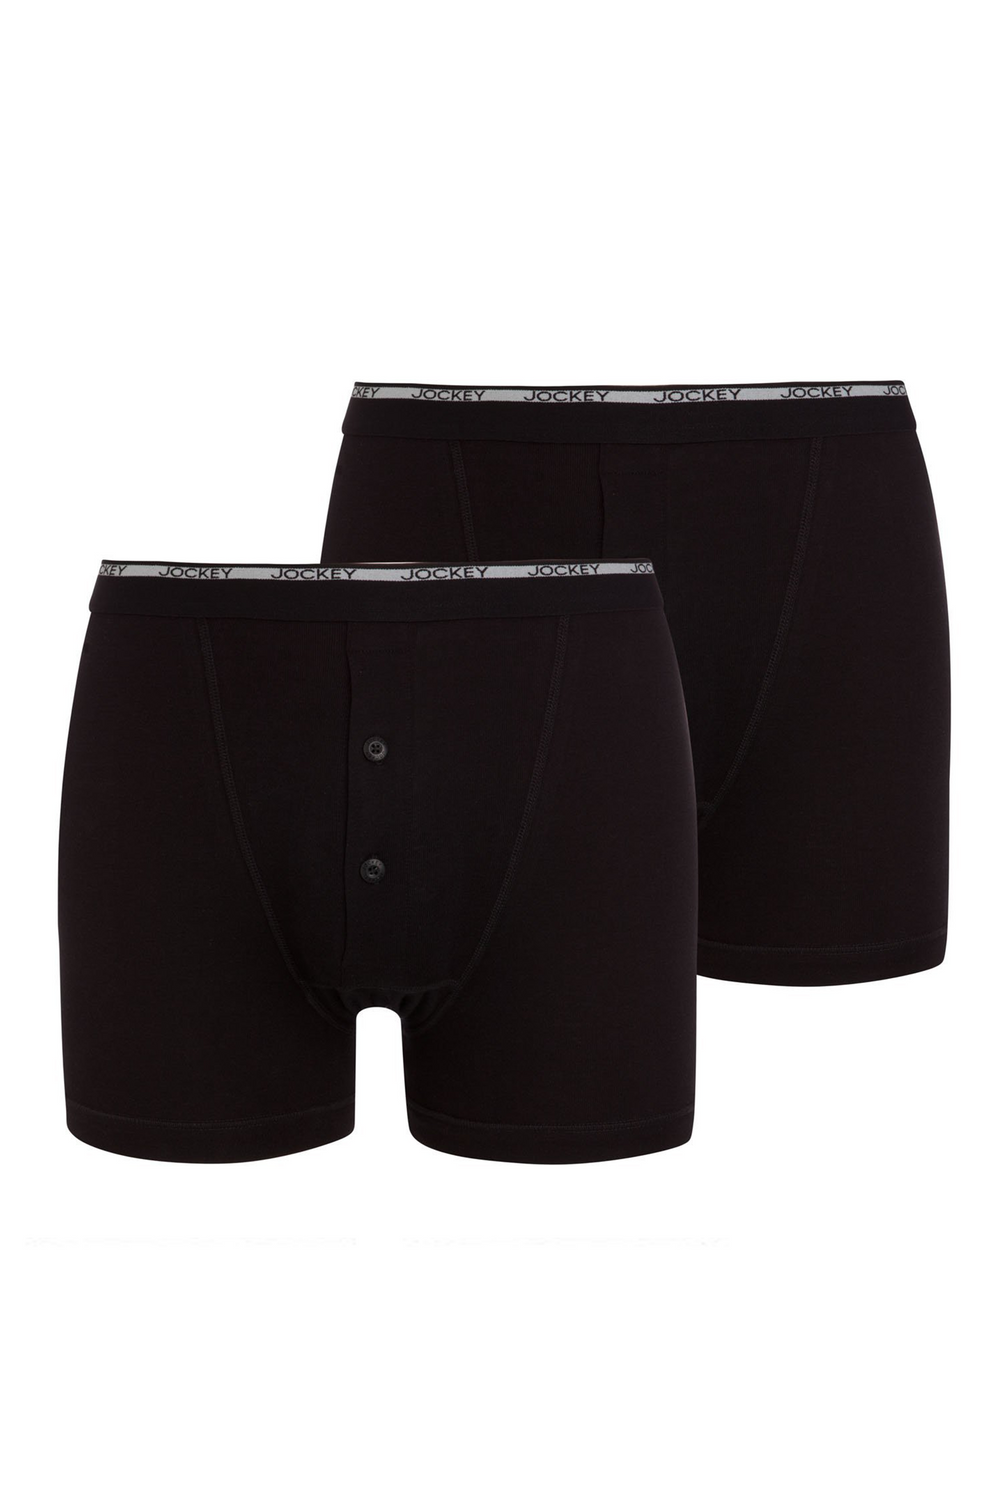 Jockey® Modern Classic Y-Front® Button Fly Boxer Trunk 2Pack